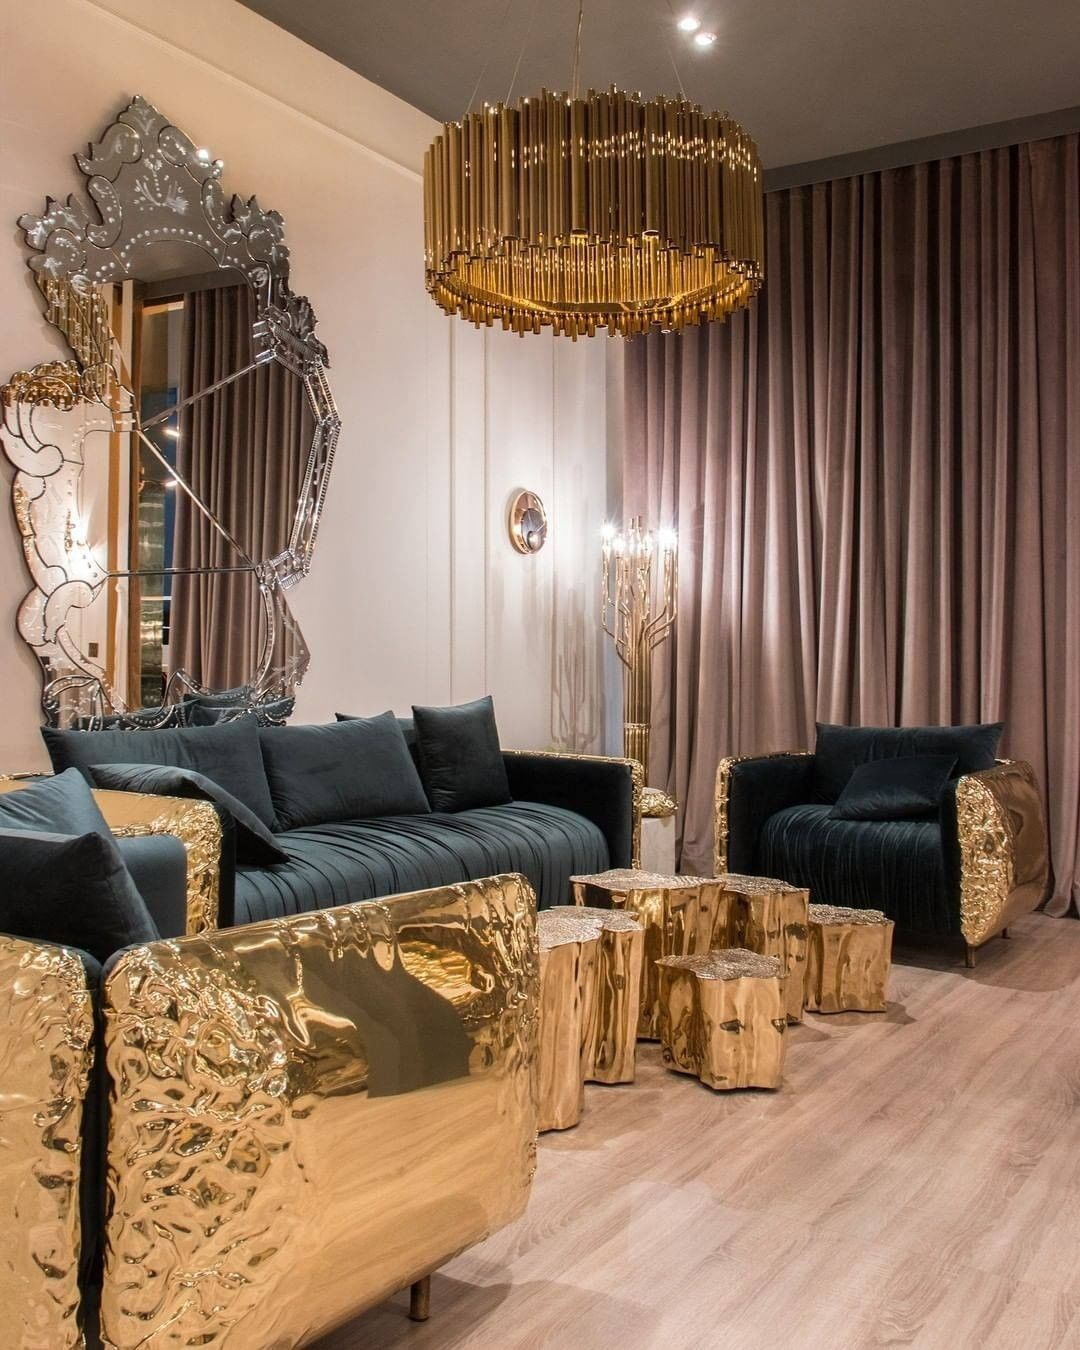 THE PERFECT LIVING ROOM TO DEFINE LUXURY